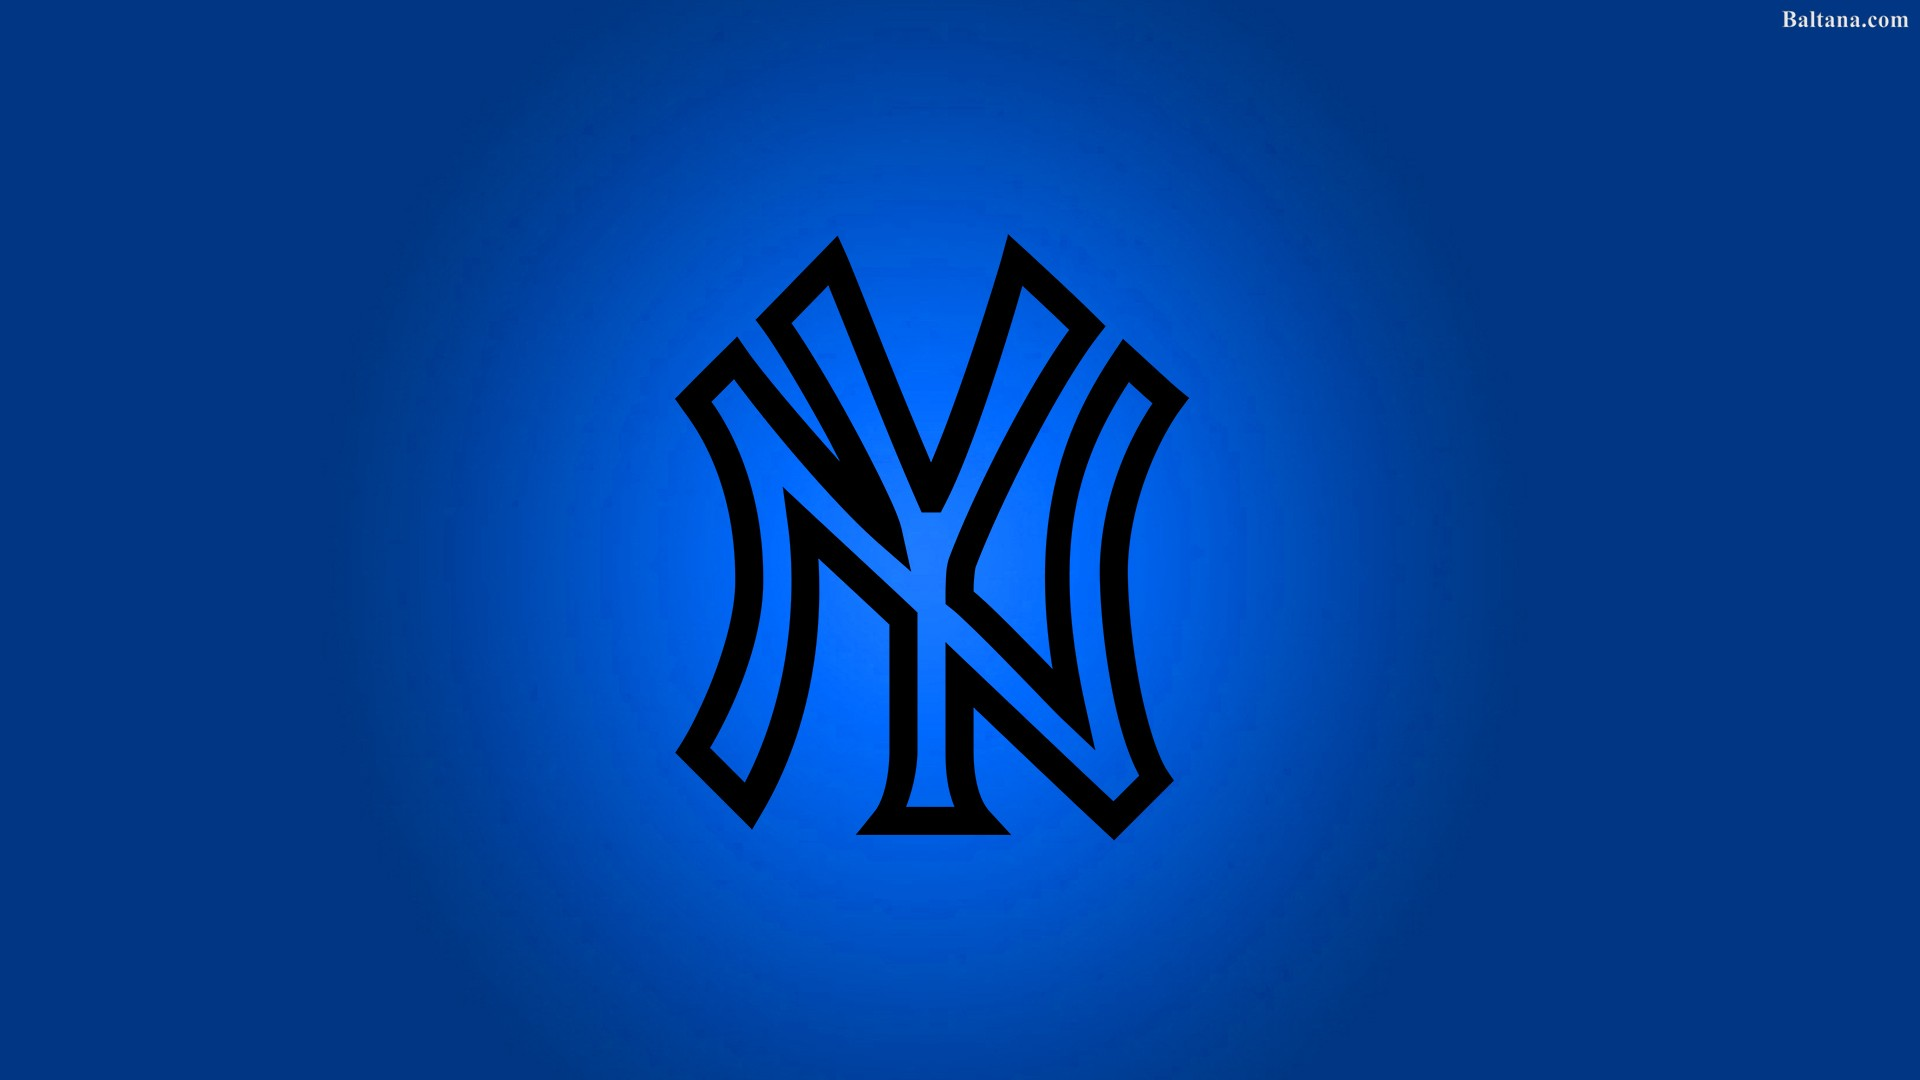 New York Yankees Wallpapers Hd Backgrounds Images New York